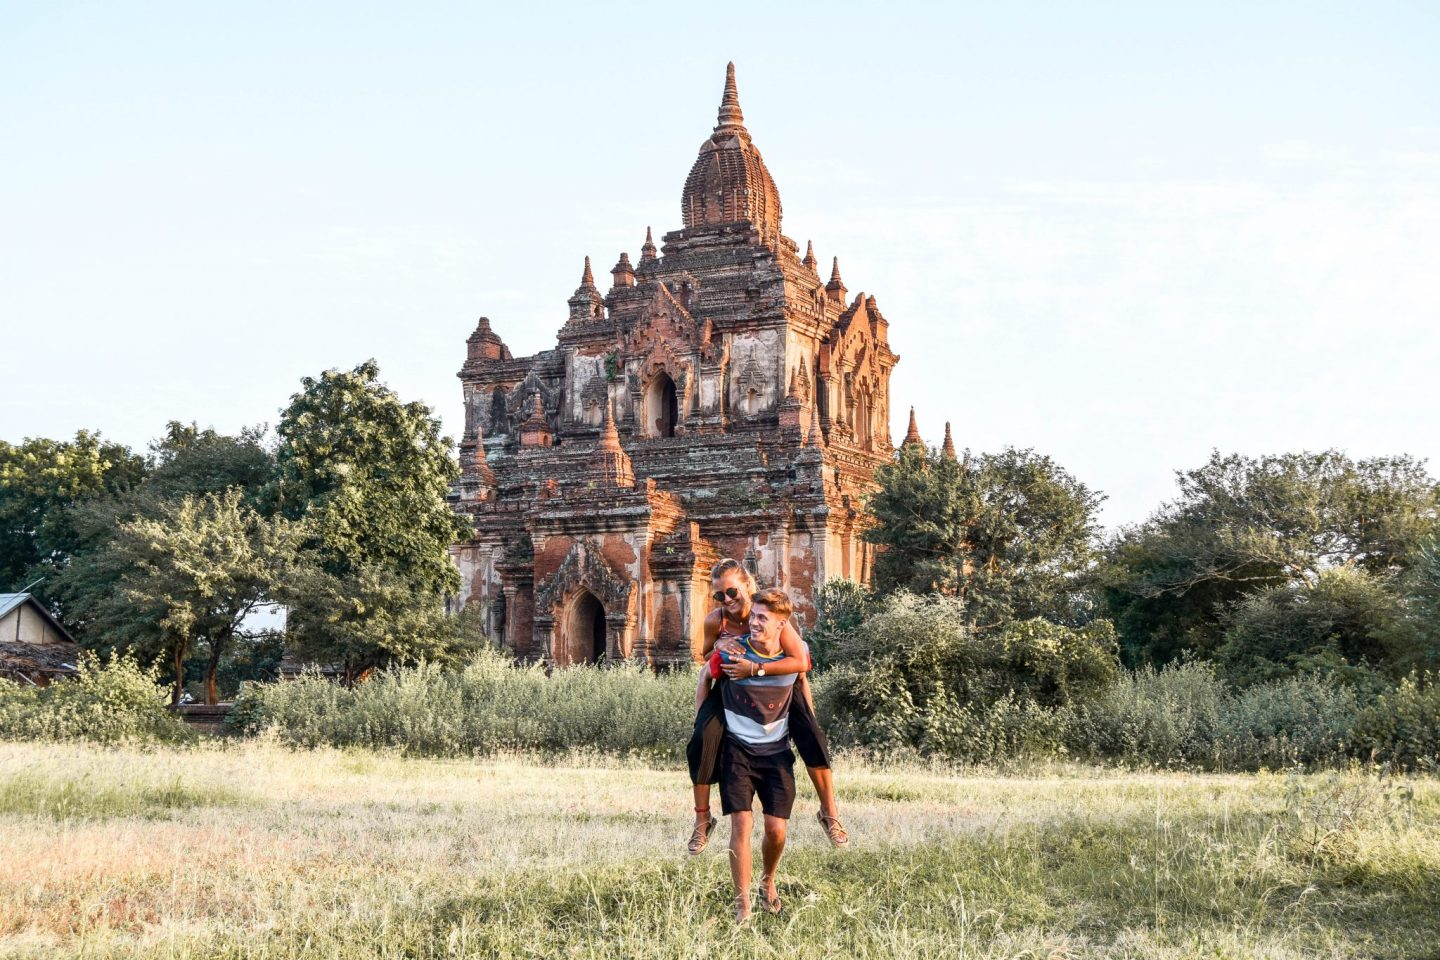 Wanderers & Warriors - Charlie & Lauren UK Travel Couple - Bagan Temples - Best Pagodas For Sunrise & Sunset - Sulamani Pagoda Myanmar